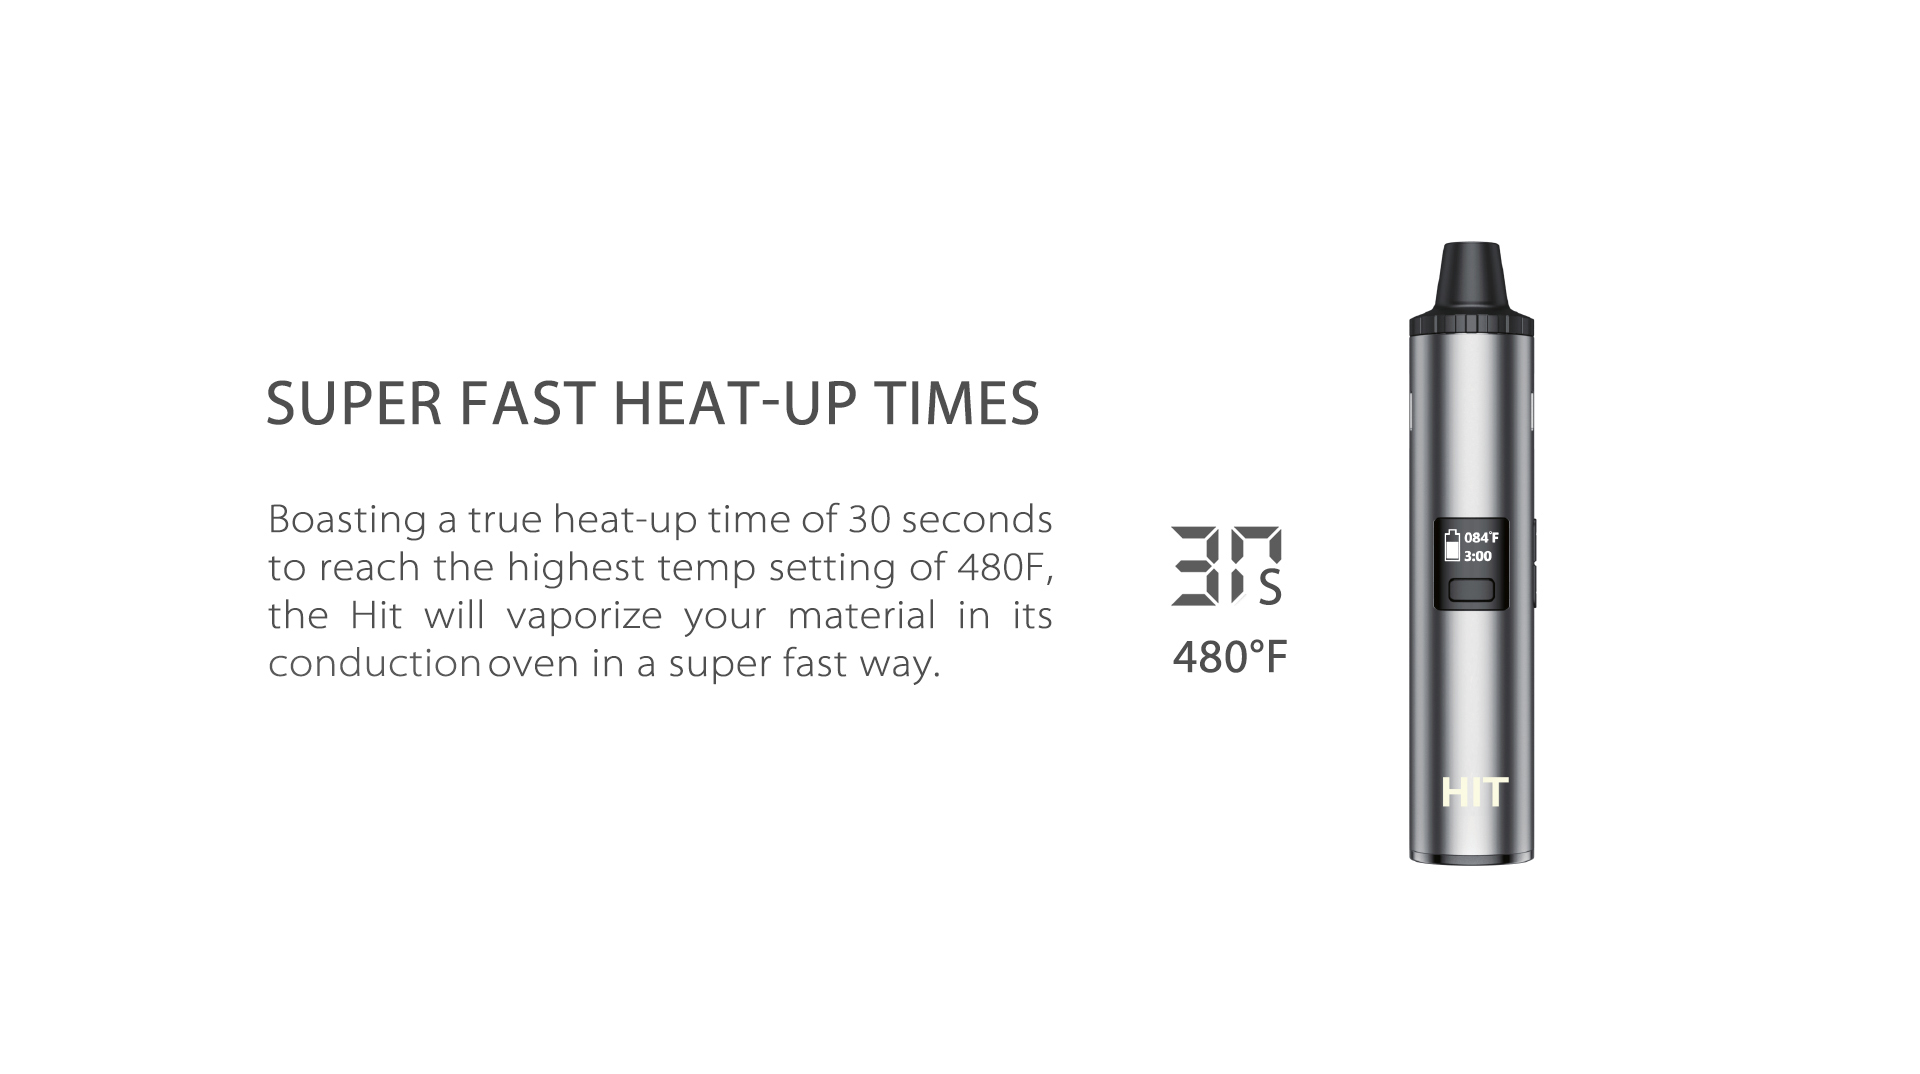 Yocan Hit Vaporizer Pen will vaporize your material in its conduction oven in a super fast way.